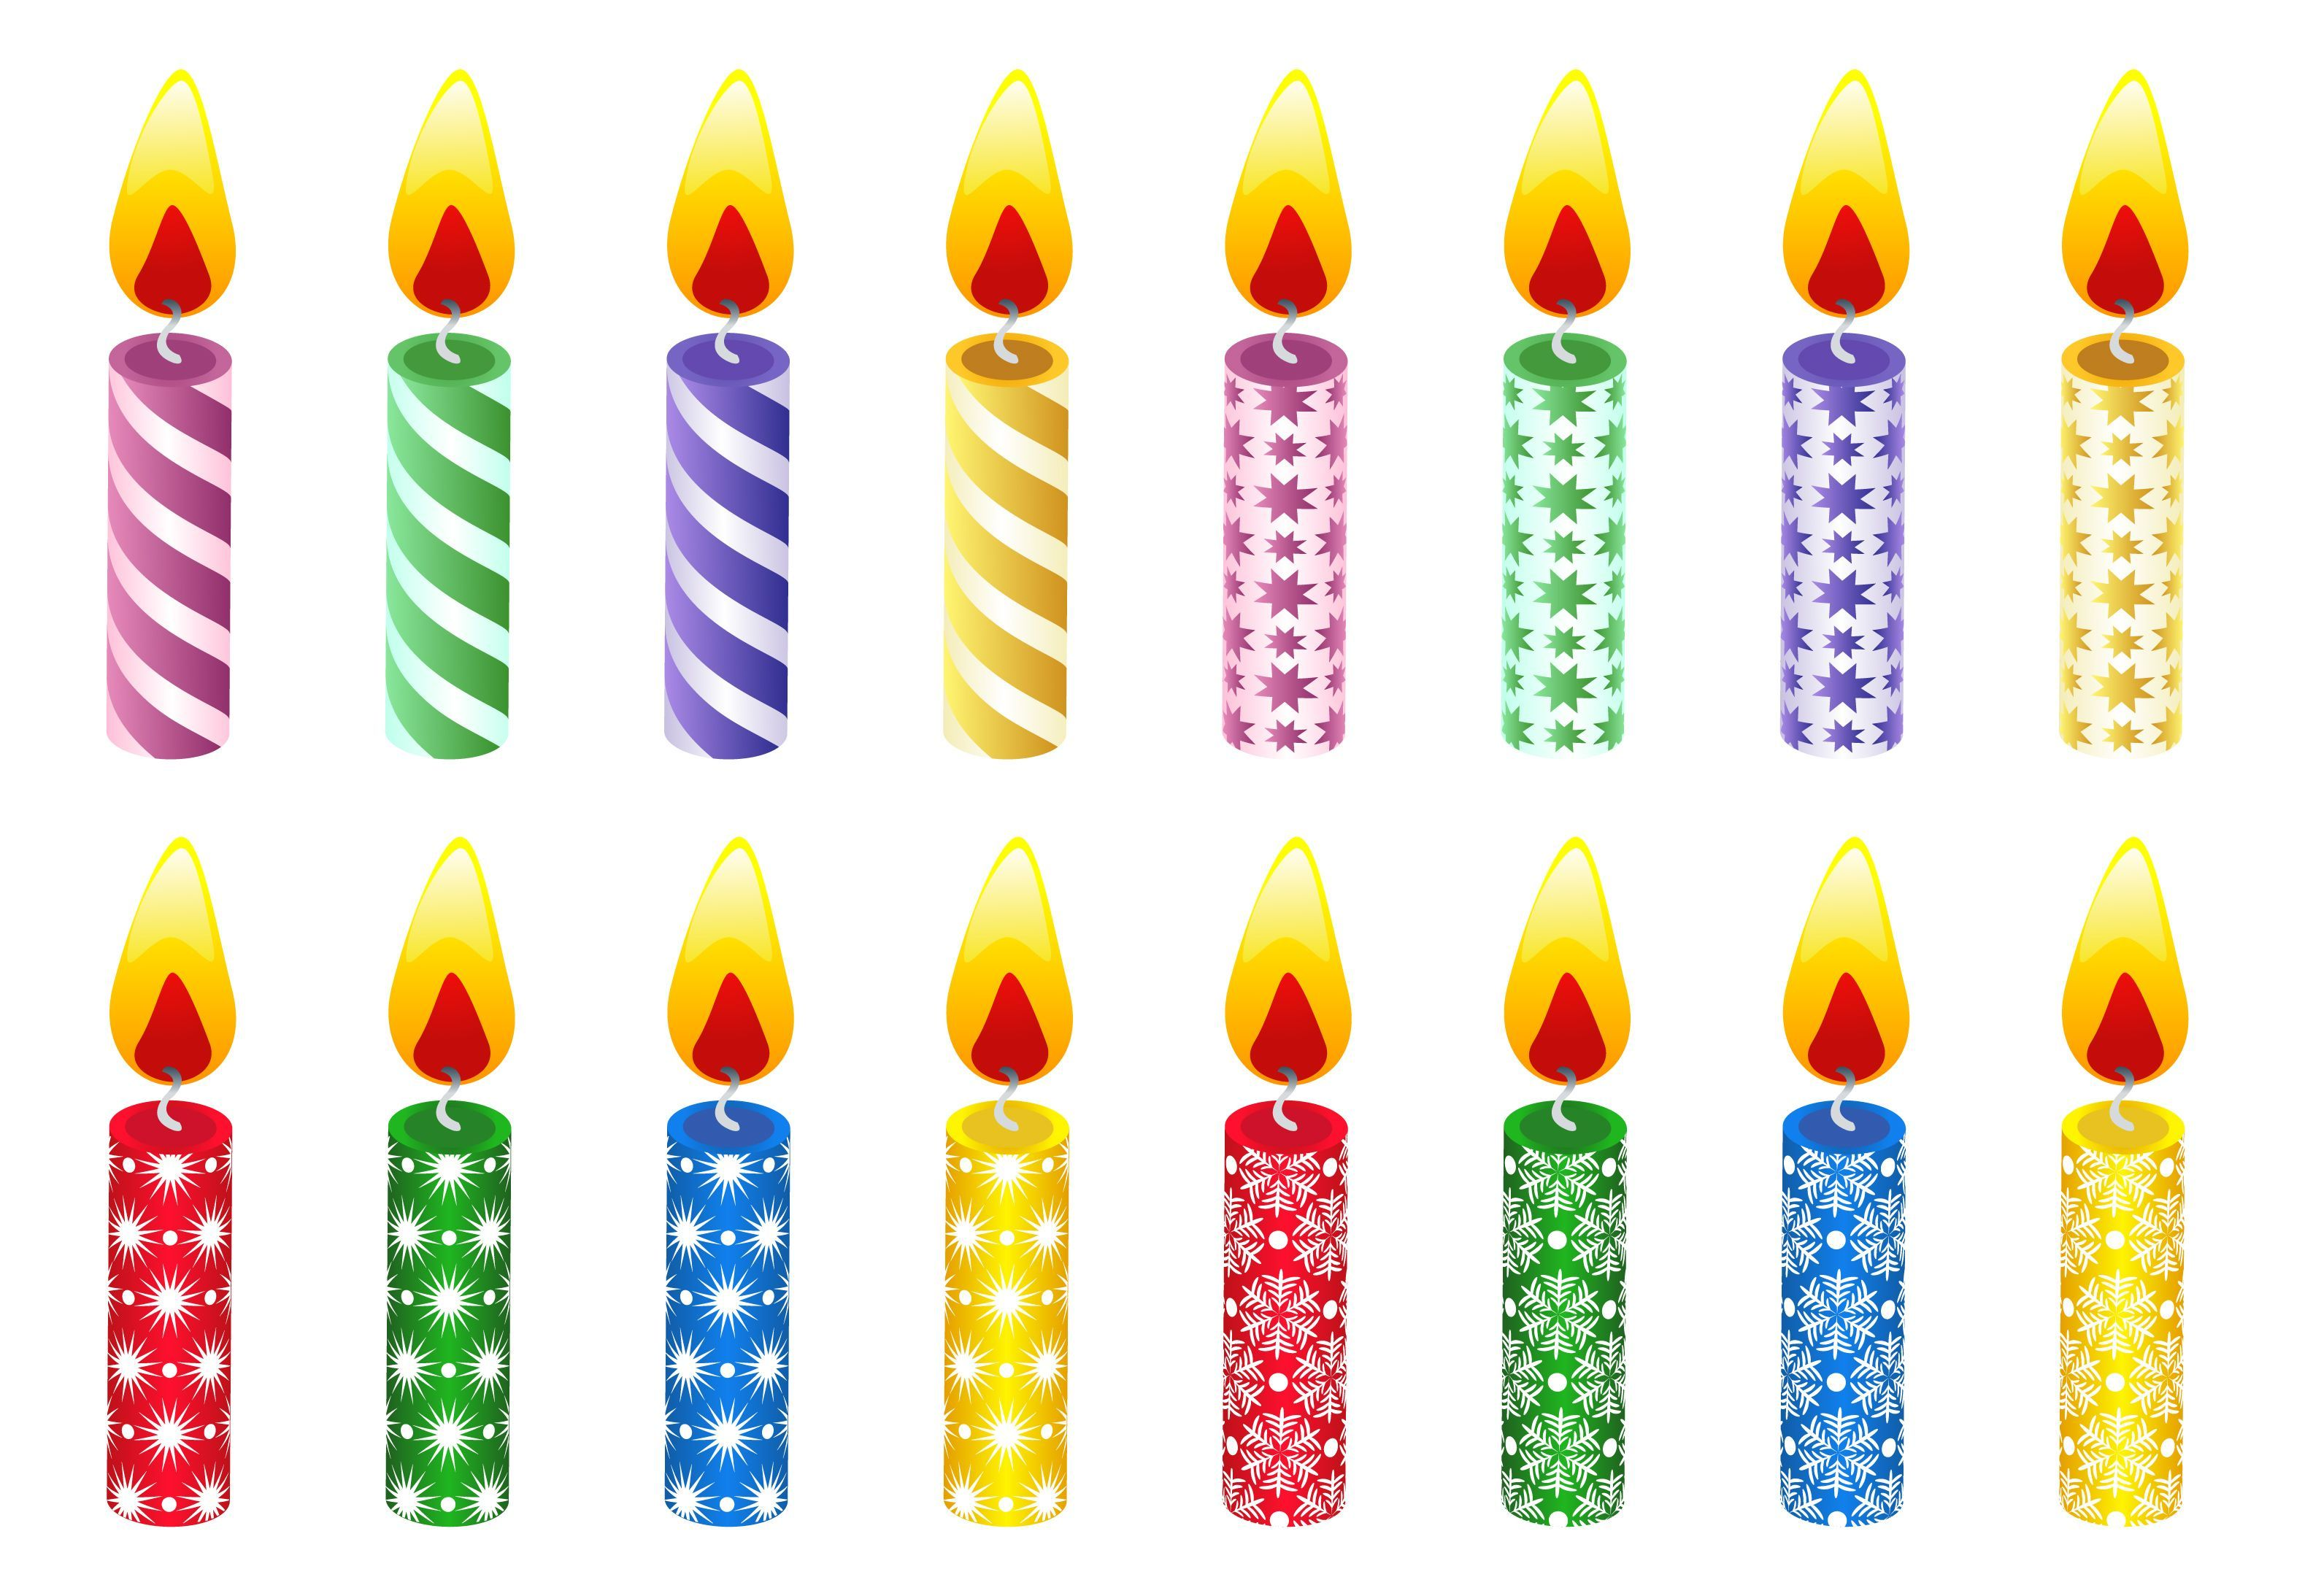 Wonderful Screen Birthday Candles Clipart Suggestions When You Visualize A Birthday Par In 2021 Birthday Candle Clipart Happy Birthday Cards Printable Birthday Candles